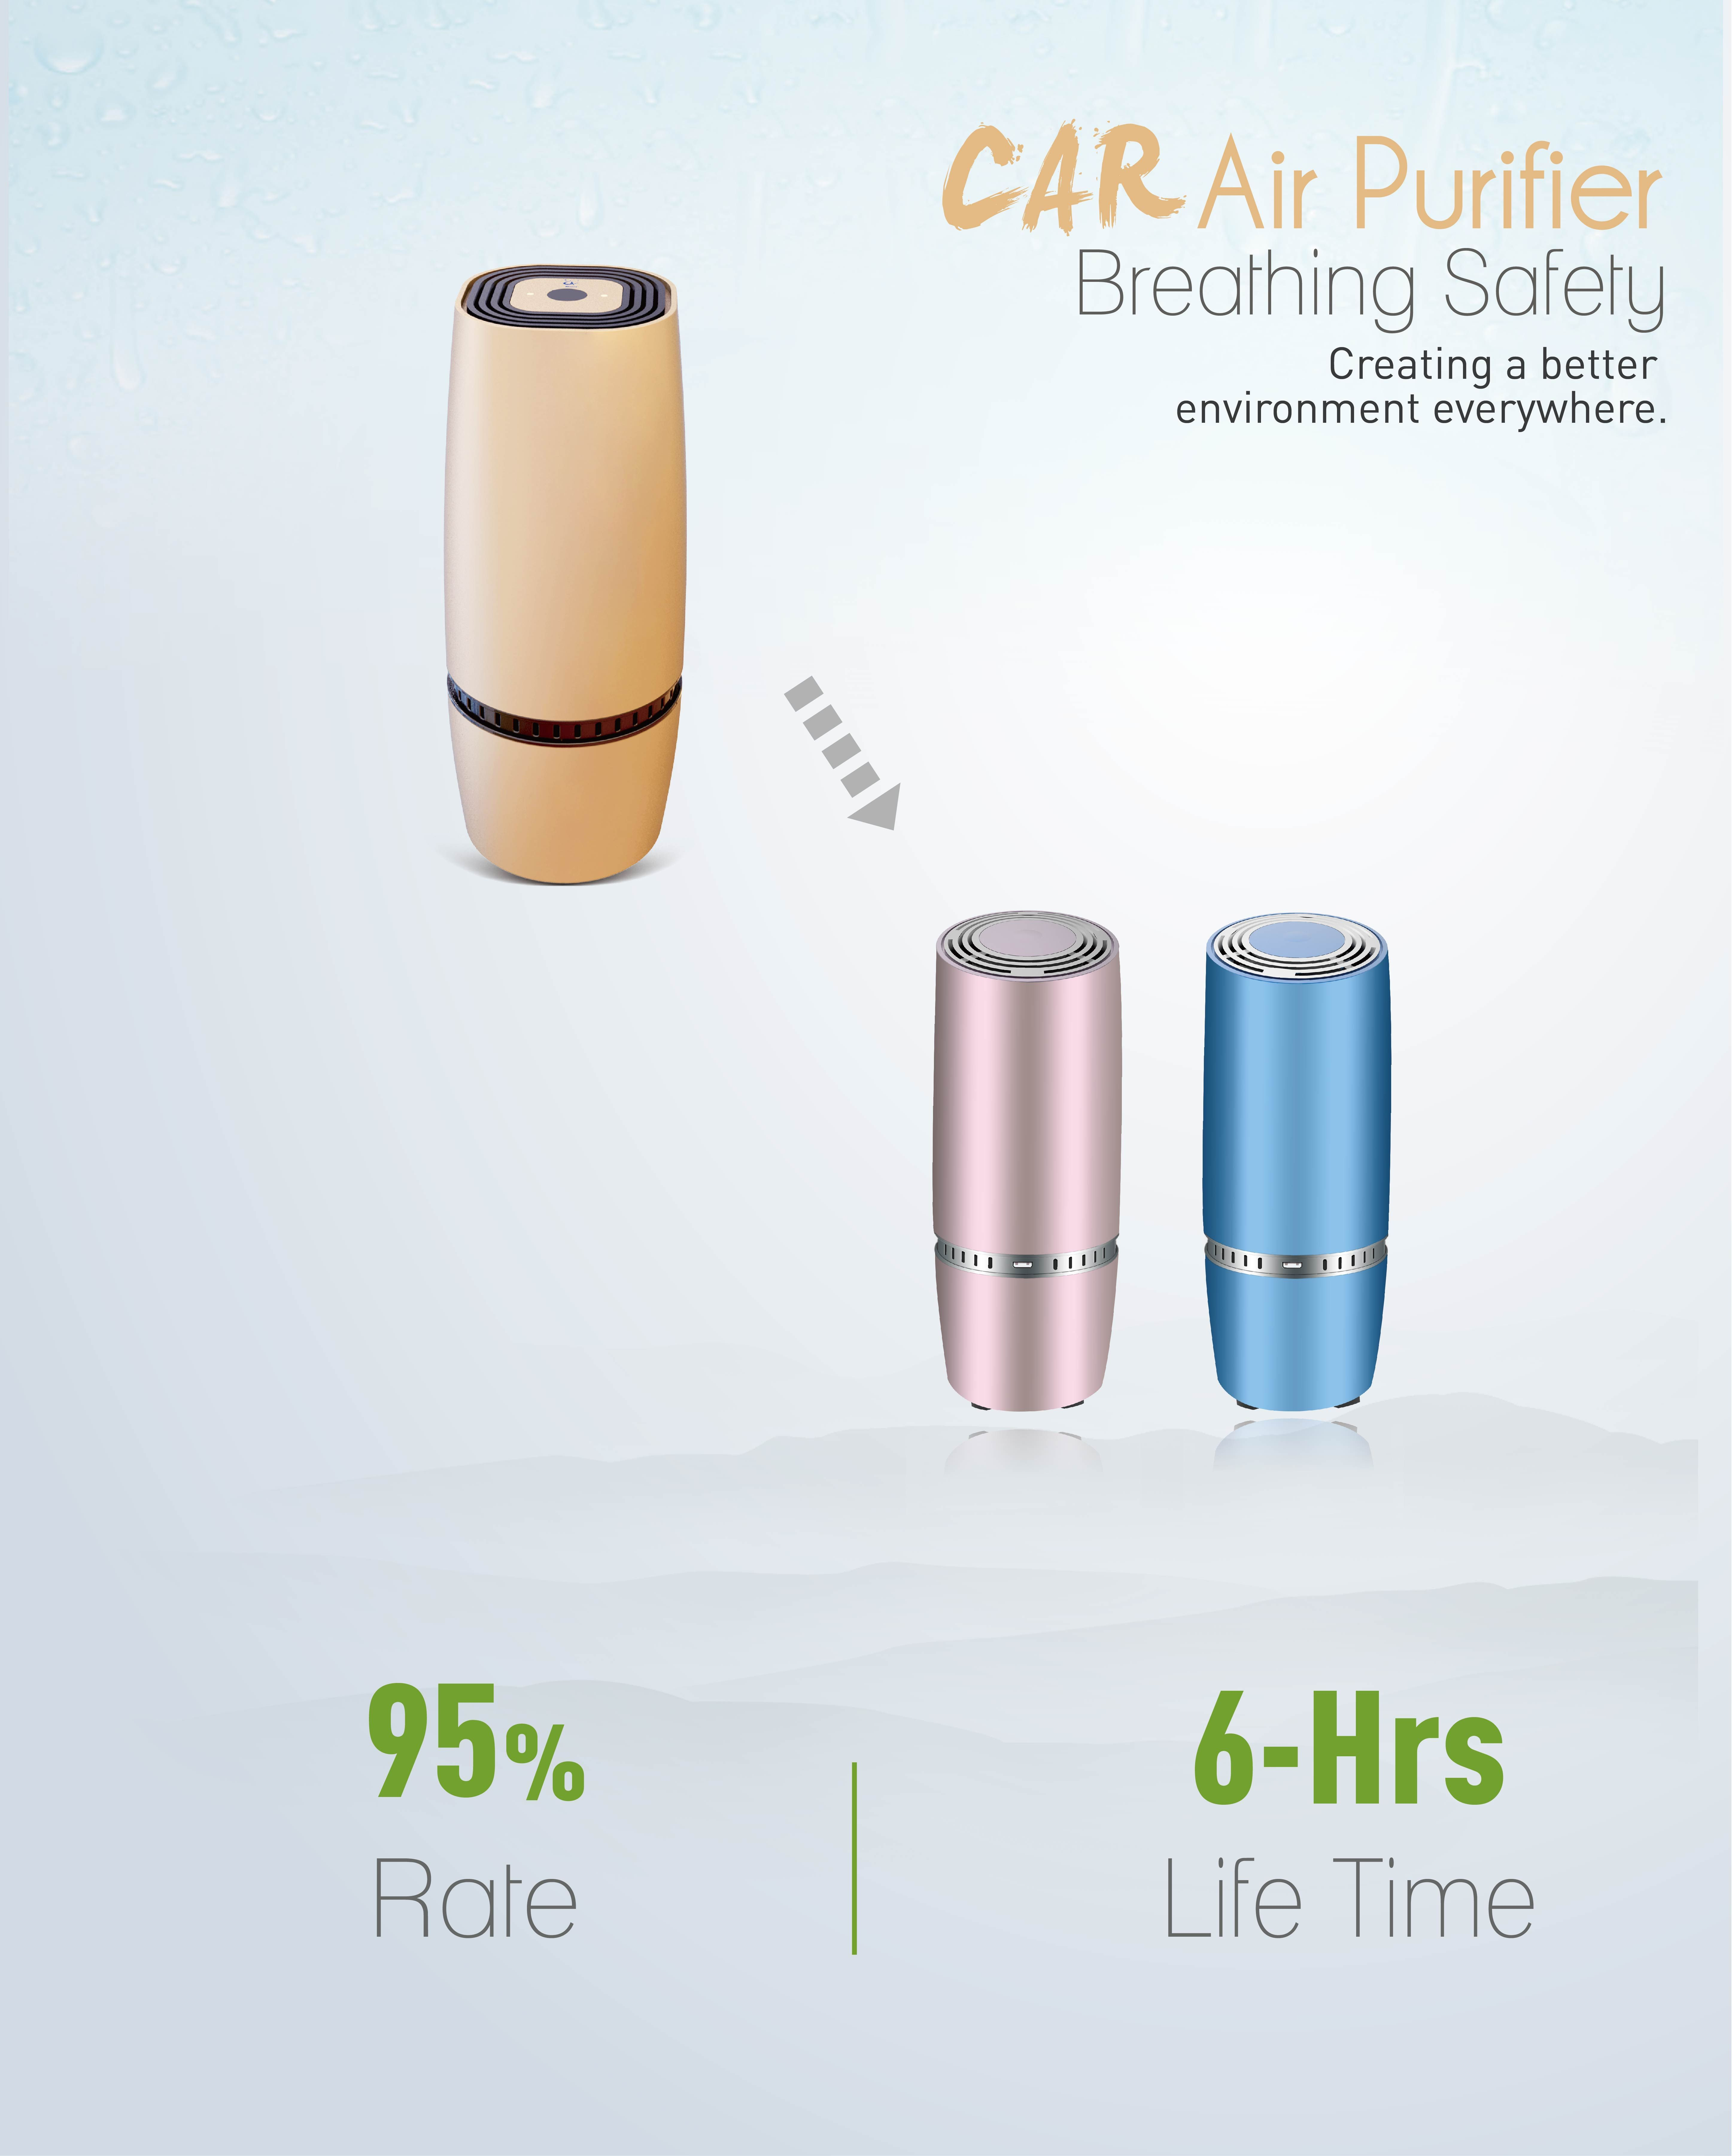 Hospital grade air purifier for the home and office.